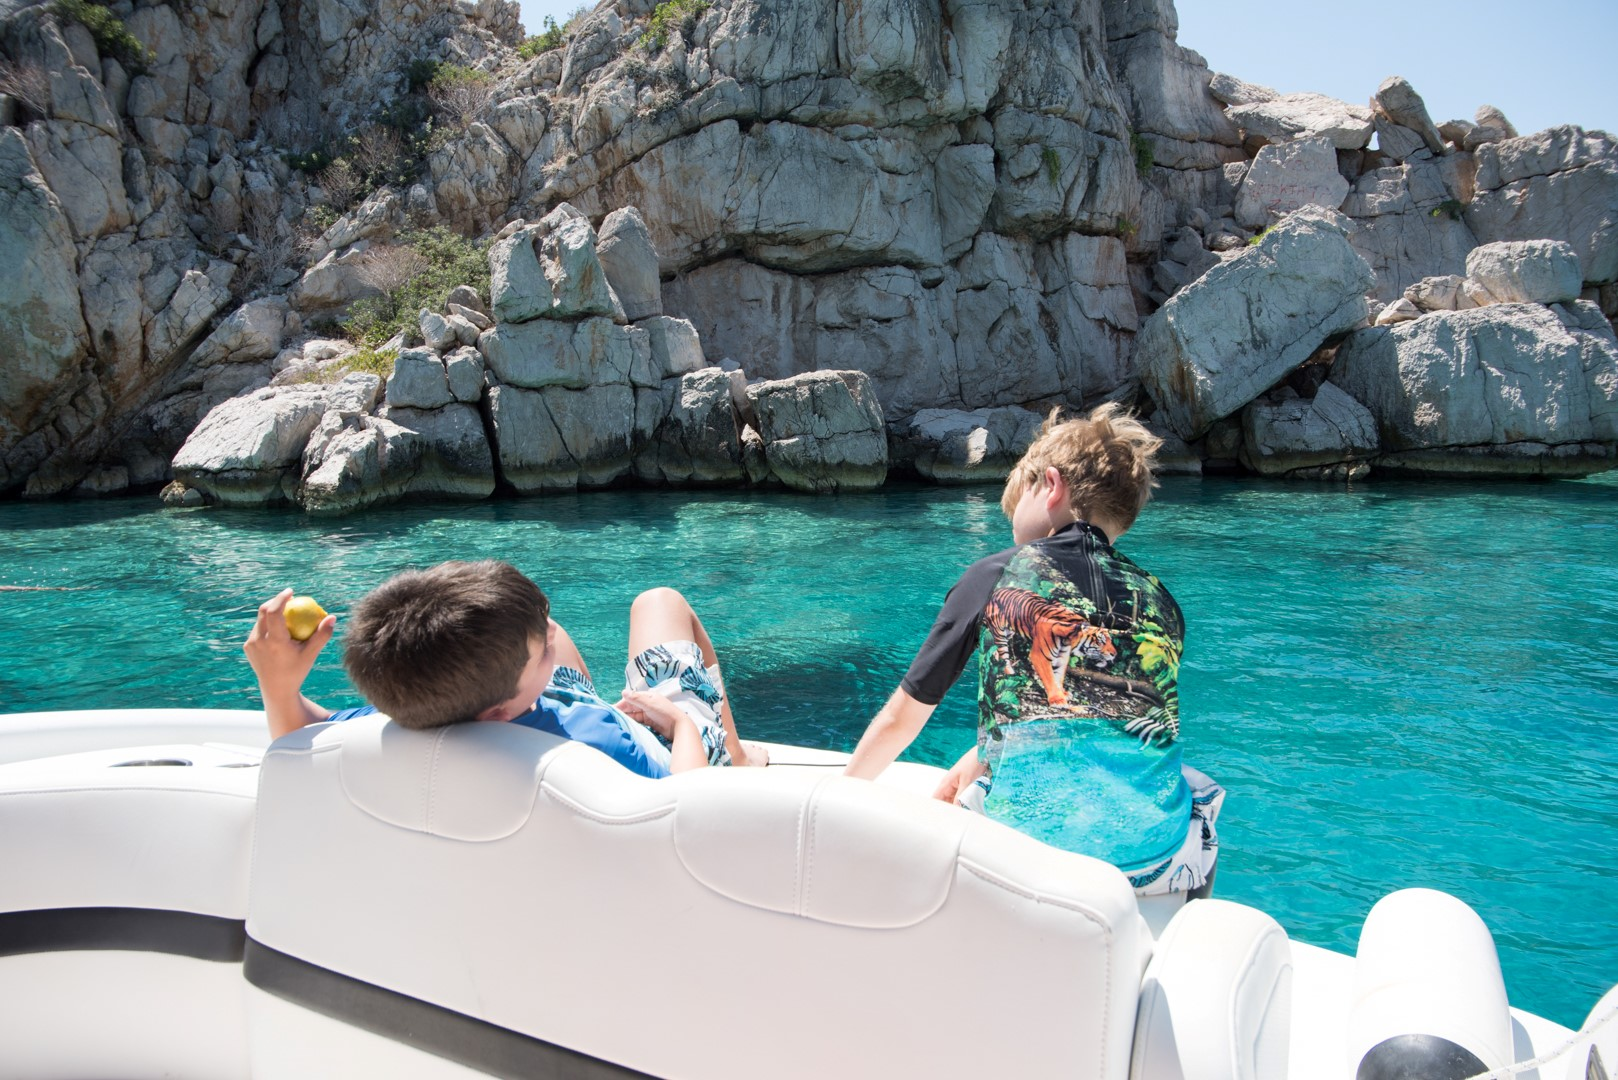 Dolphin spotting and cliff diving in Loutraki Greece